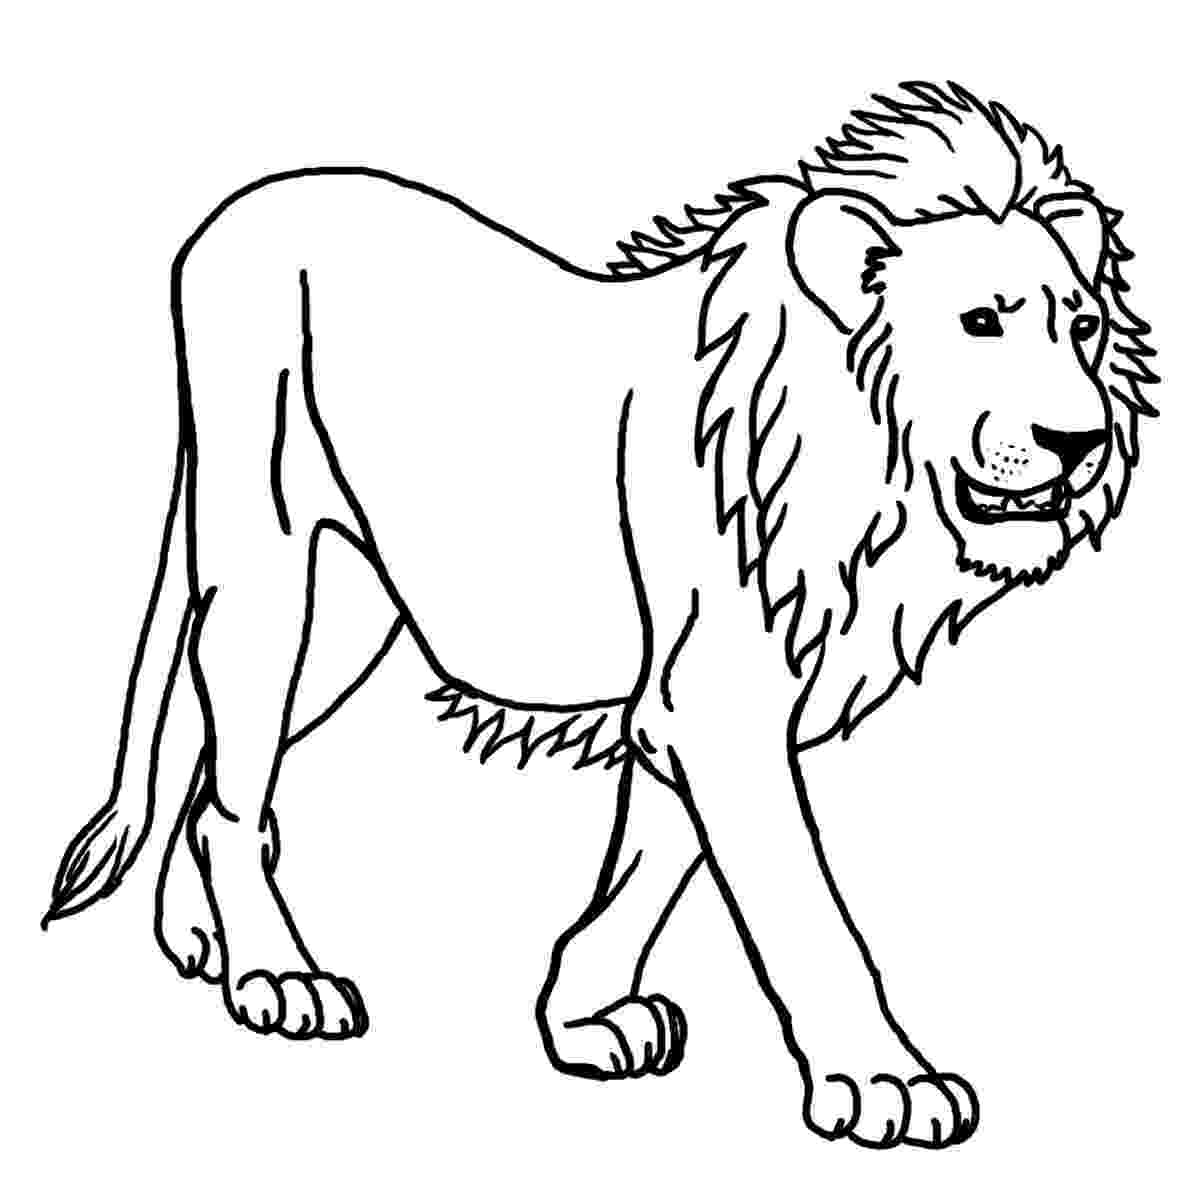 coloring book lion 18 best zoo animals images on pinterest zoo animals lion book coloring